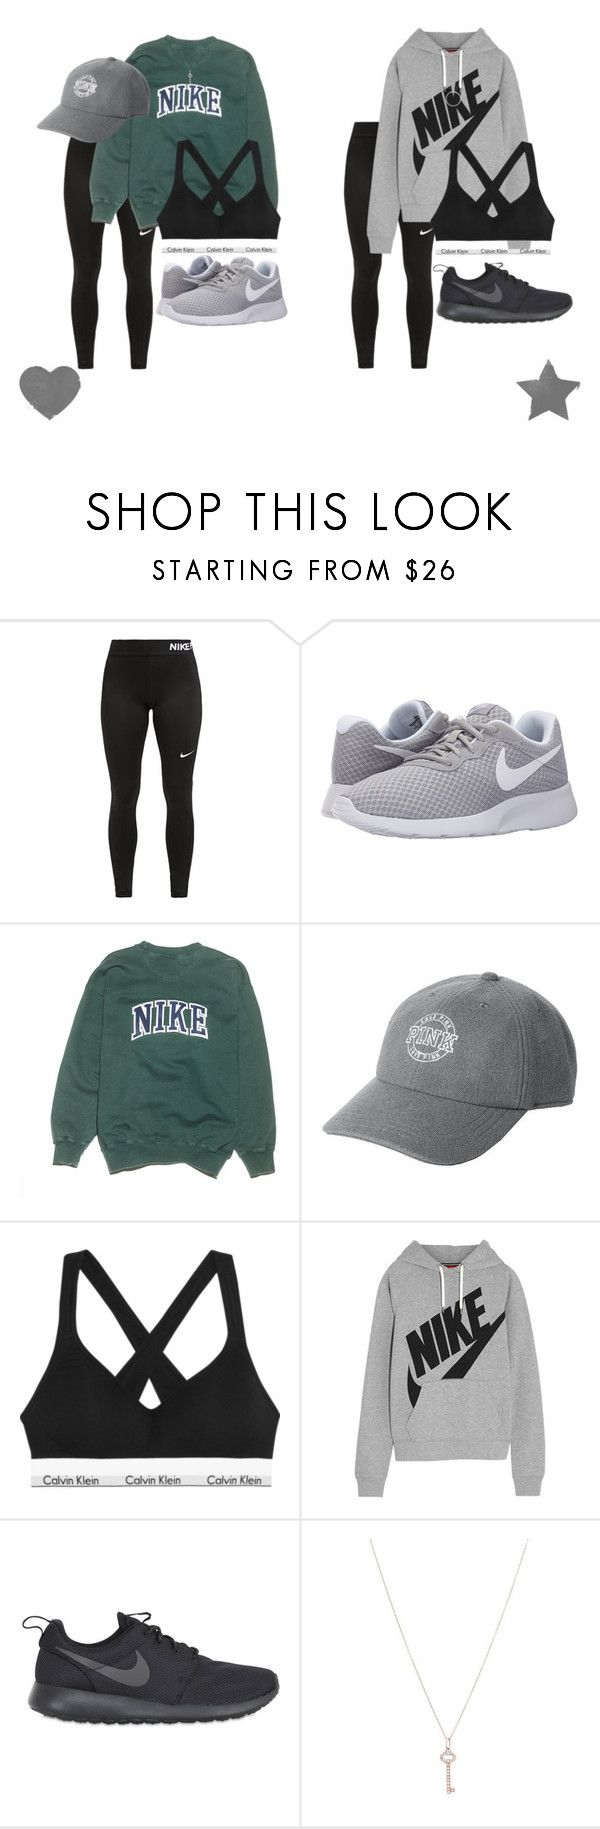 833a87d2bb00 by grace-thesparklepupperoni on Polyvore featuring NIKE